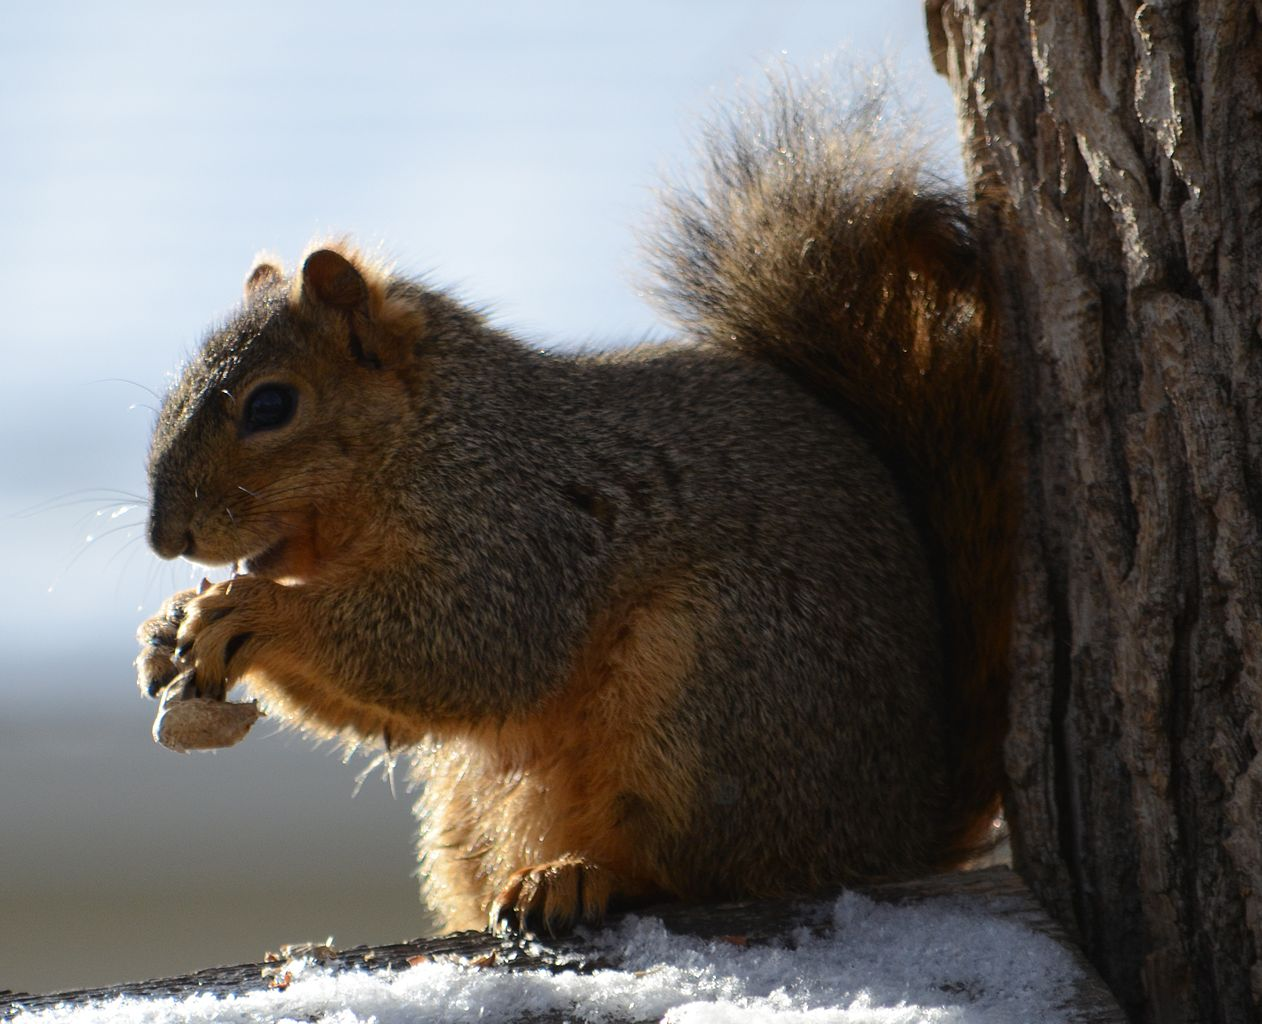 http://upload.wikimedia.org/wikipedia/commons/thumb/d/d7/Squirrel_Eating_a_peanut.jpg/1262px-Squirrel_Eating_a_peanut.jpg